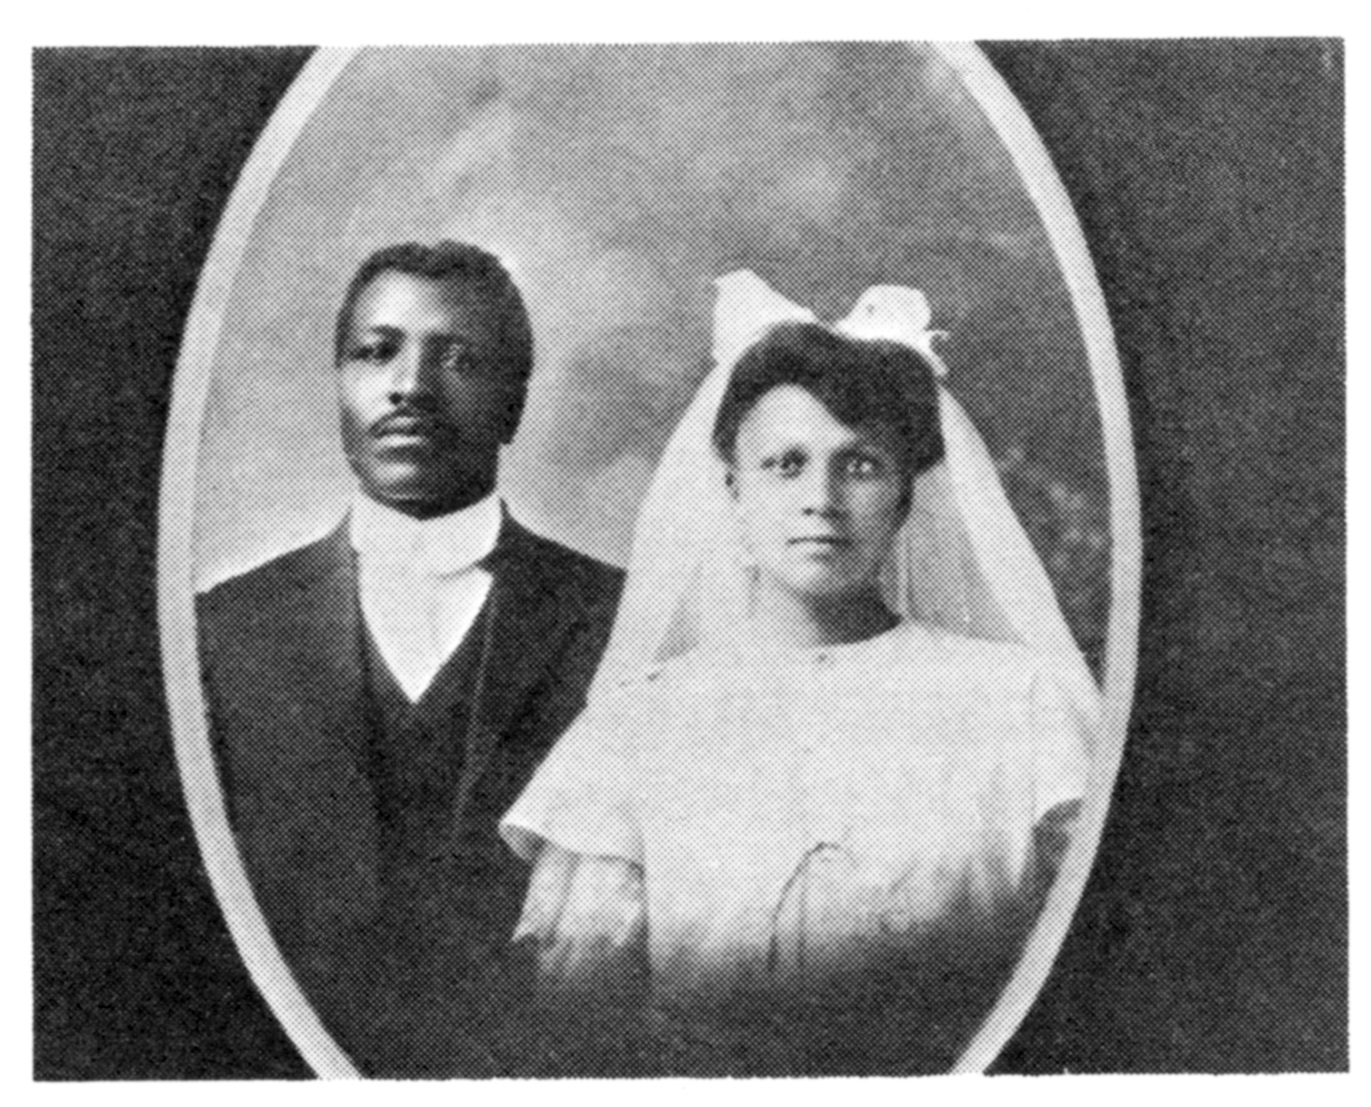 Charles and Rosetta Speese on their wedding day in 1907.